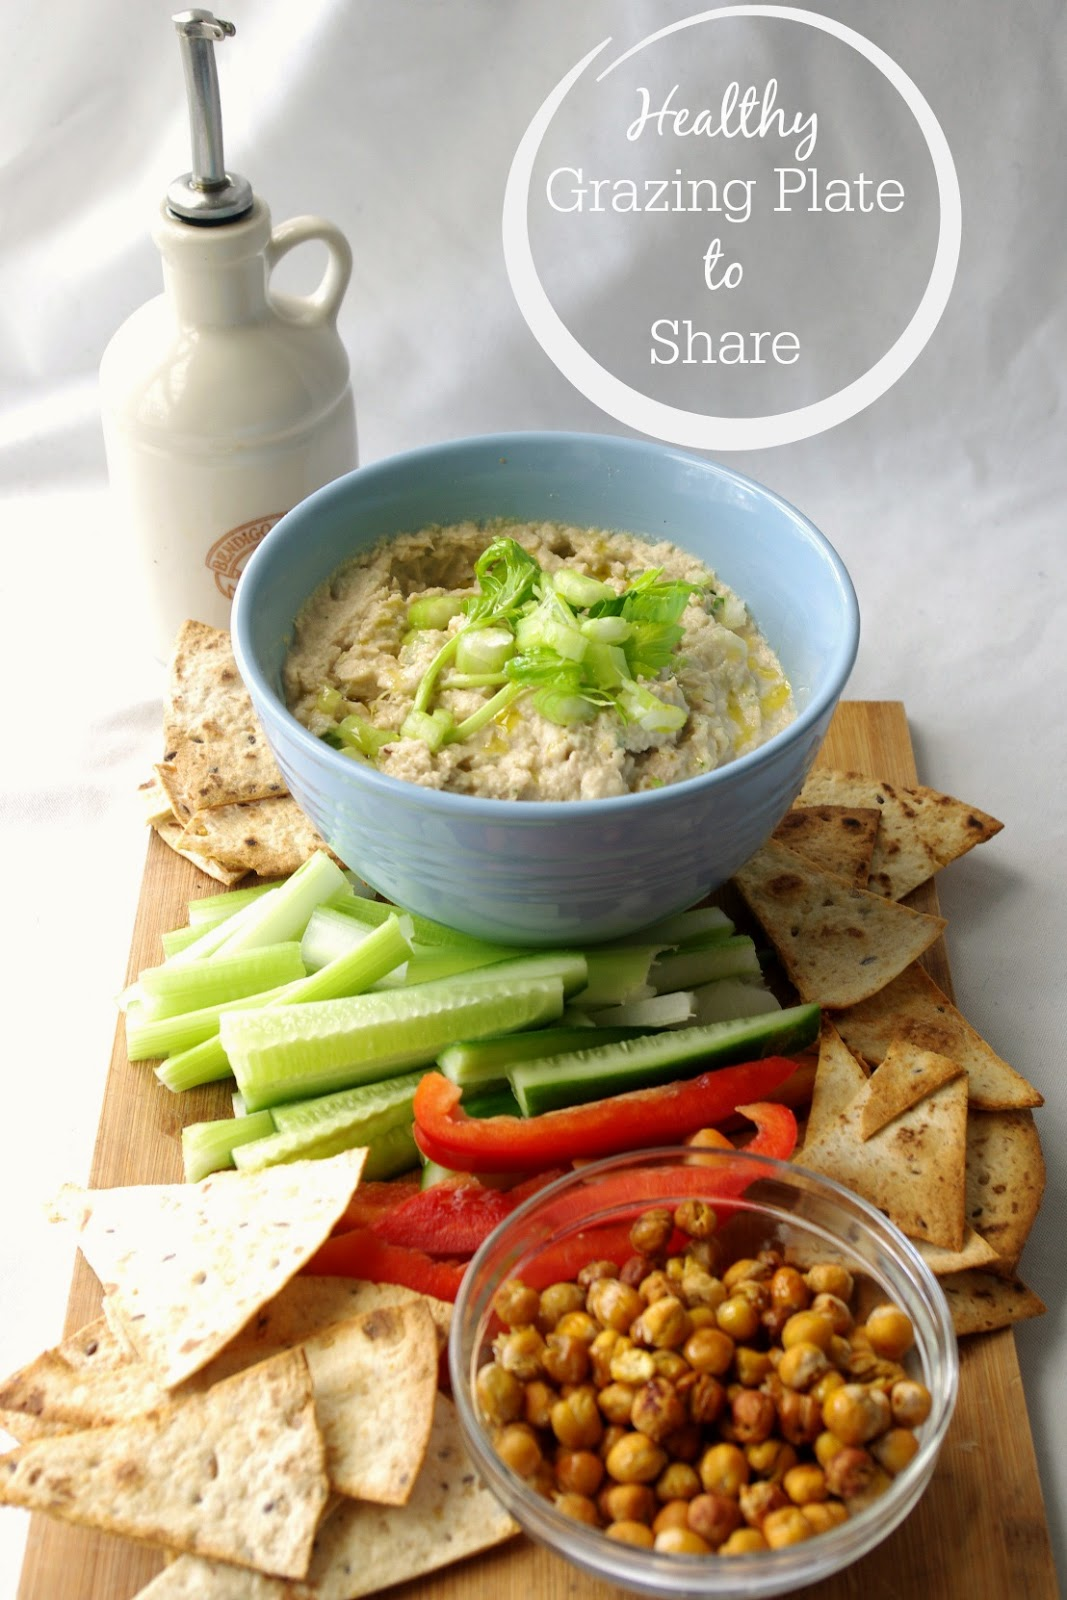 Healthy Grazing Plate to Share with dip, tortilla chips, chickpeas and crudites